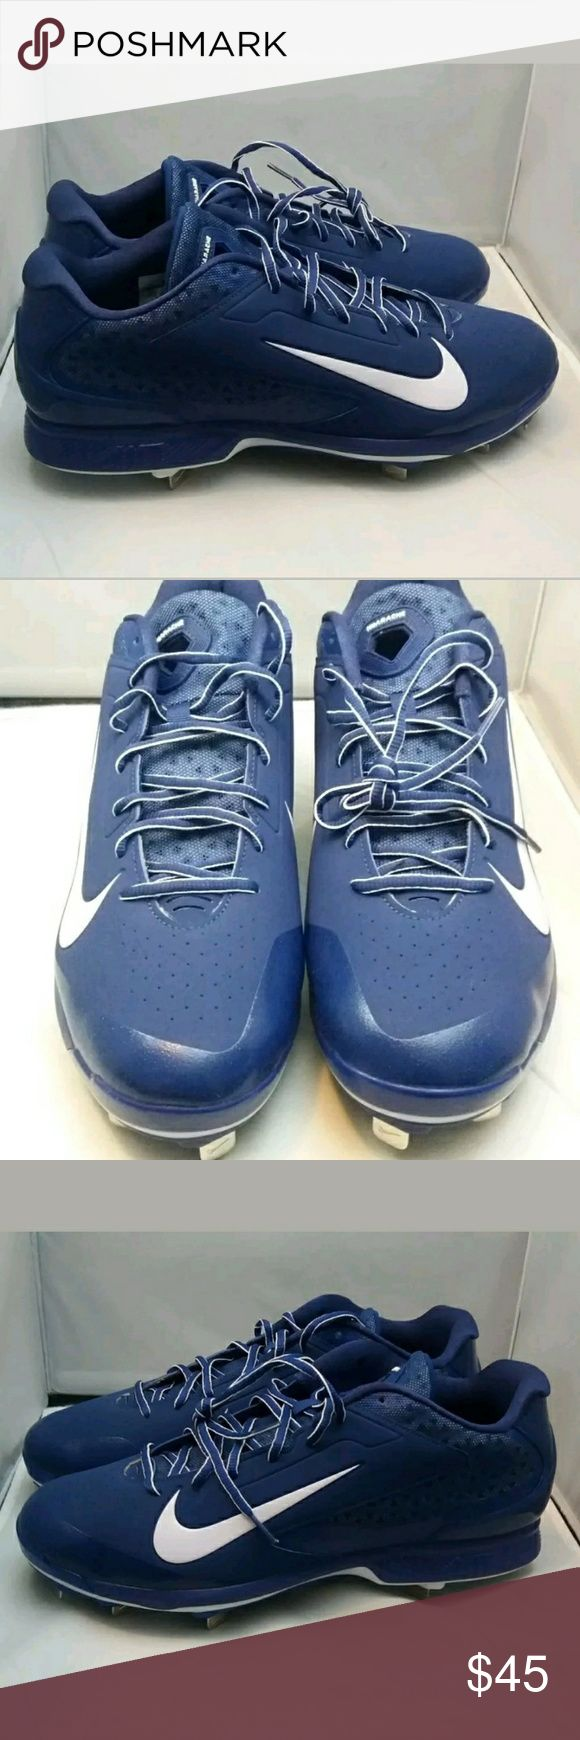 Nike air Huarache low molded baseball cleats Nike baseball cleats sz 13.5. Brand new without box. Any questions please ask before purchase. Nike Shoes Athletic Shoes